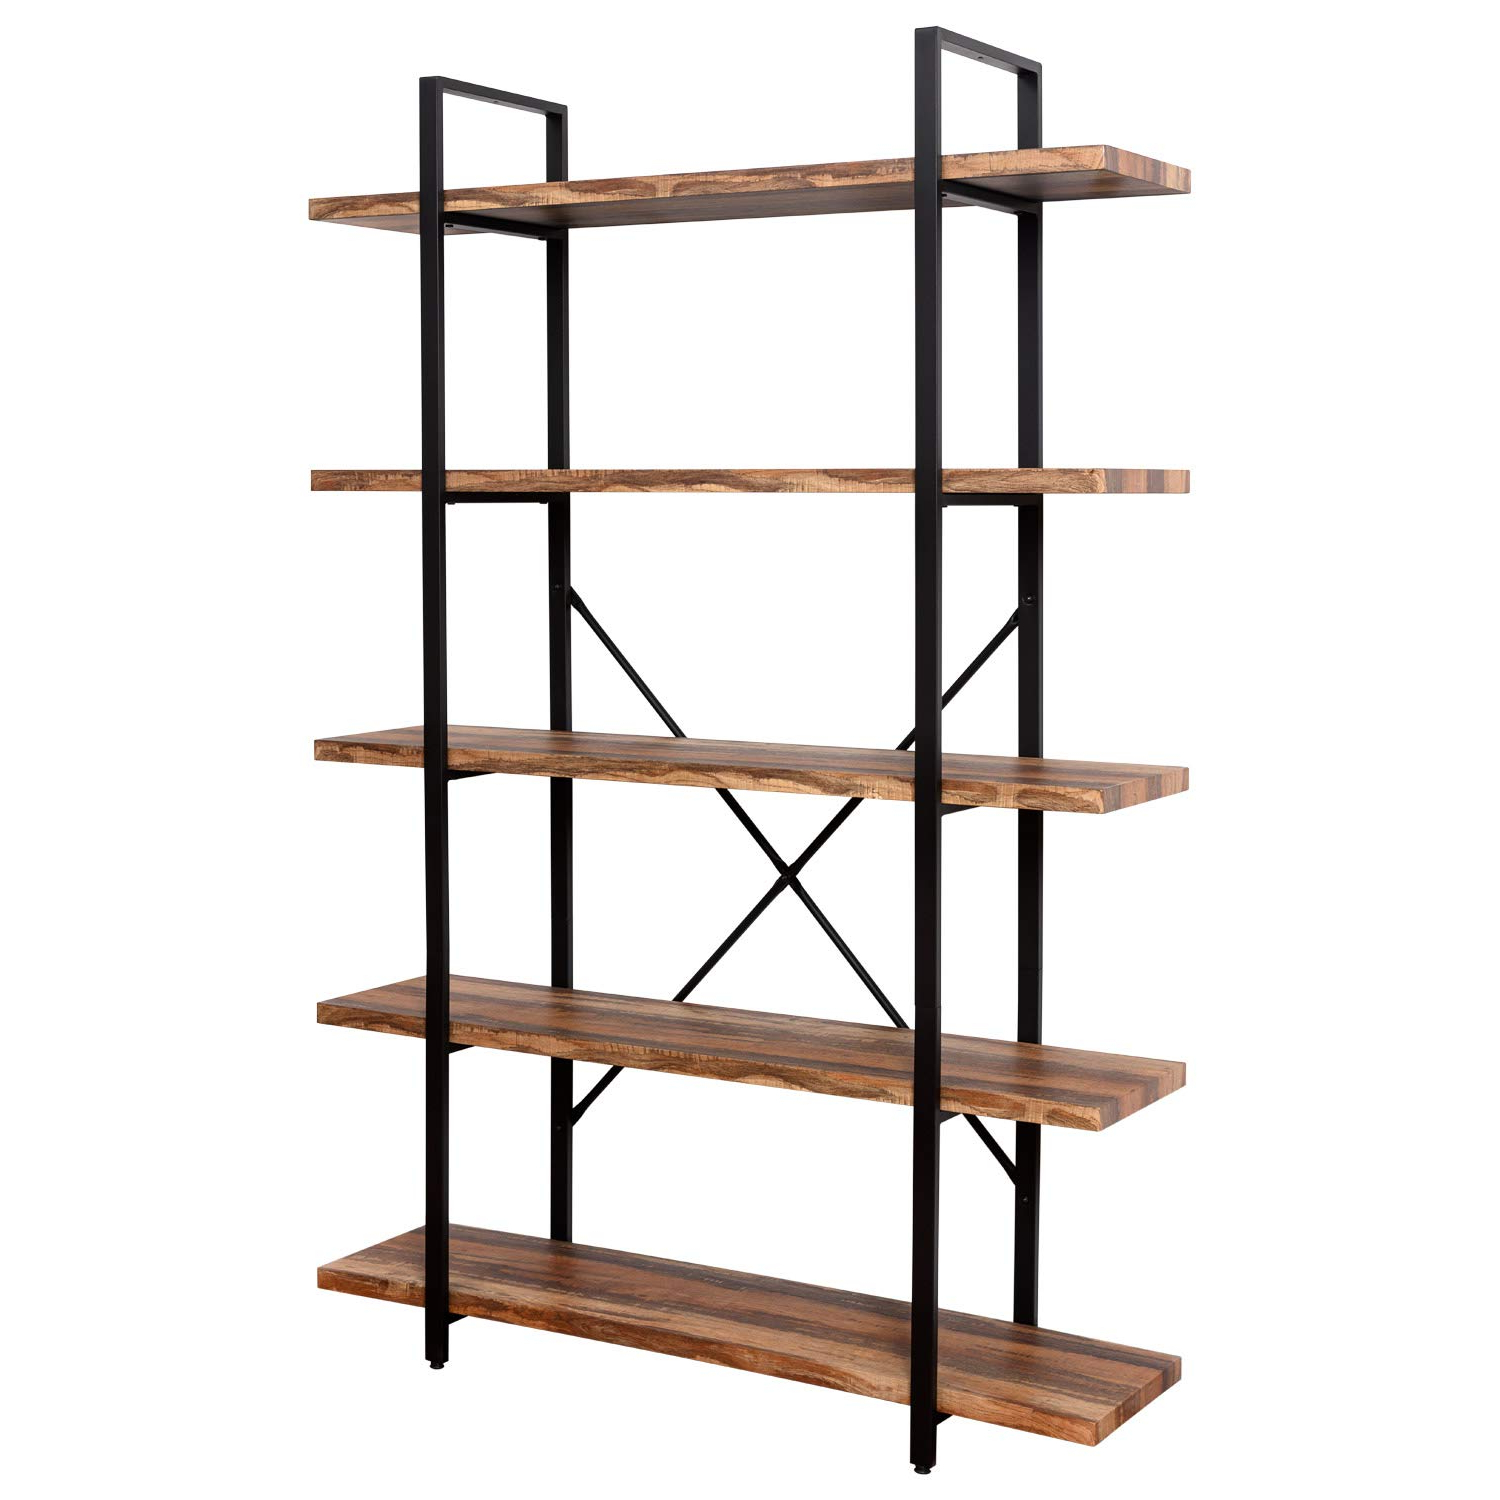 Ironck Bookshelf And Bookcase 5 Tier, 130lbs/shelf Load Capacity, Industrial Bookshelves Home Office Furniture, Wood And Metal Frame … In Well Liked Beckett Etagere Bookcases (Gallery 11 of 20)